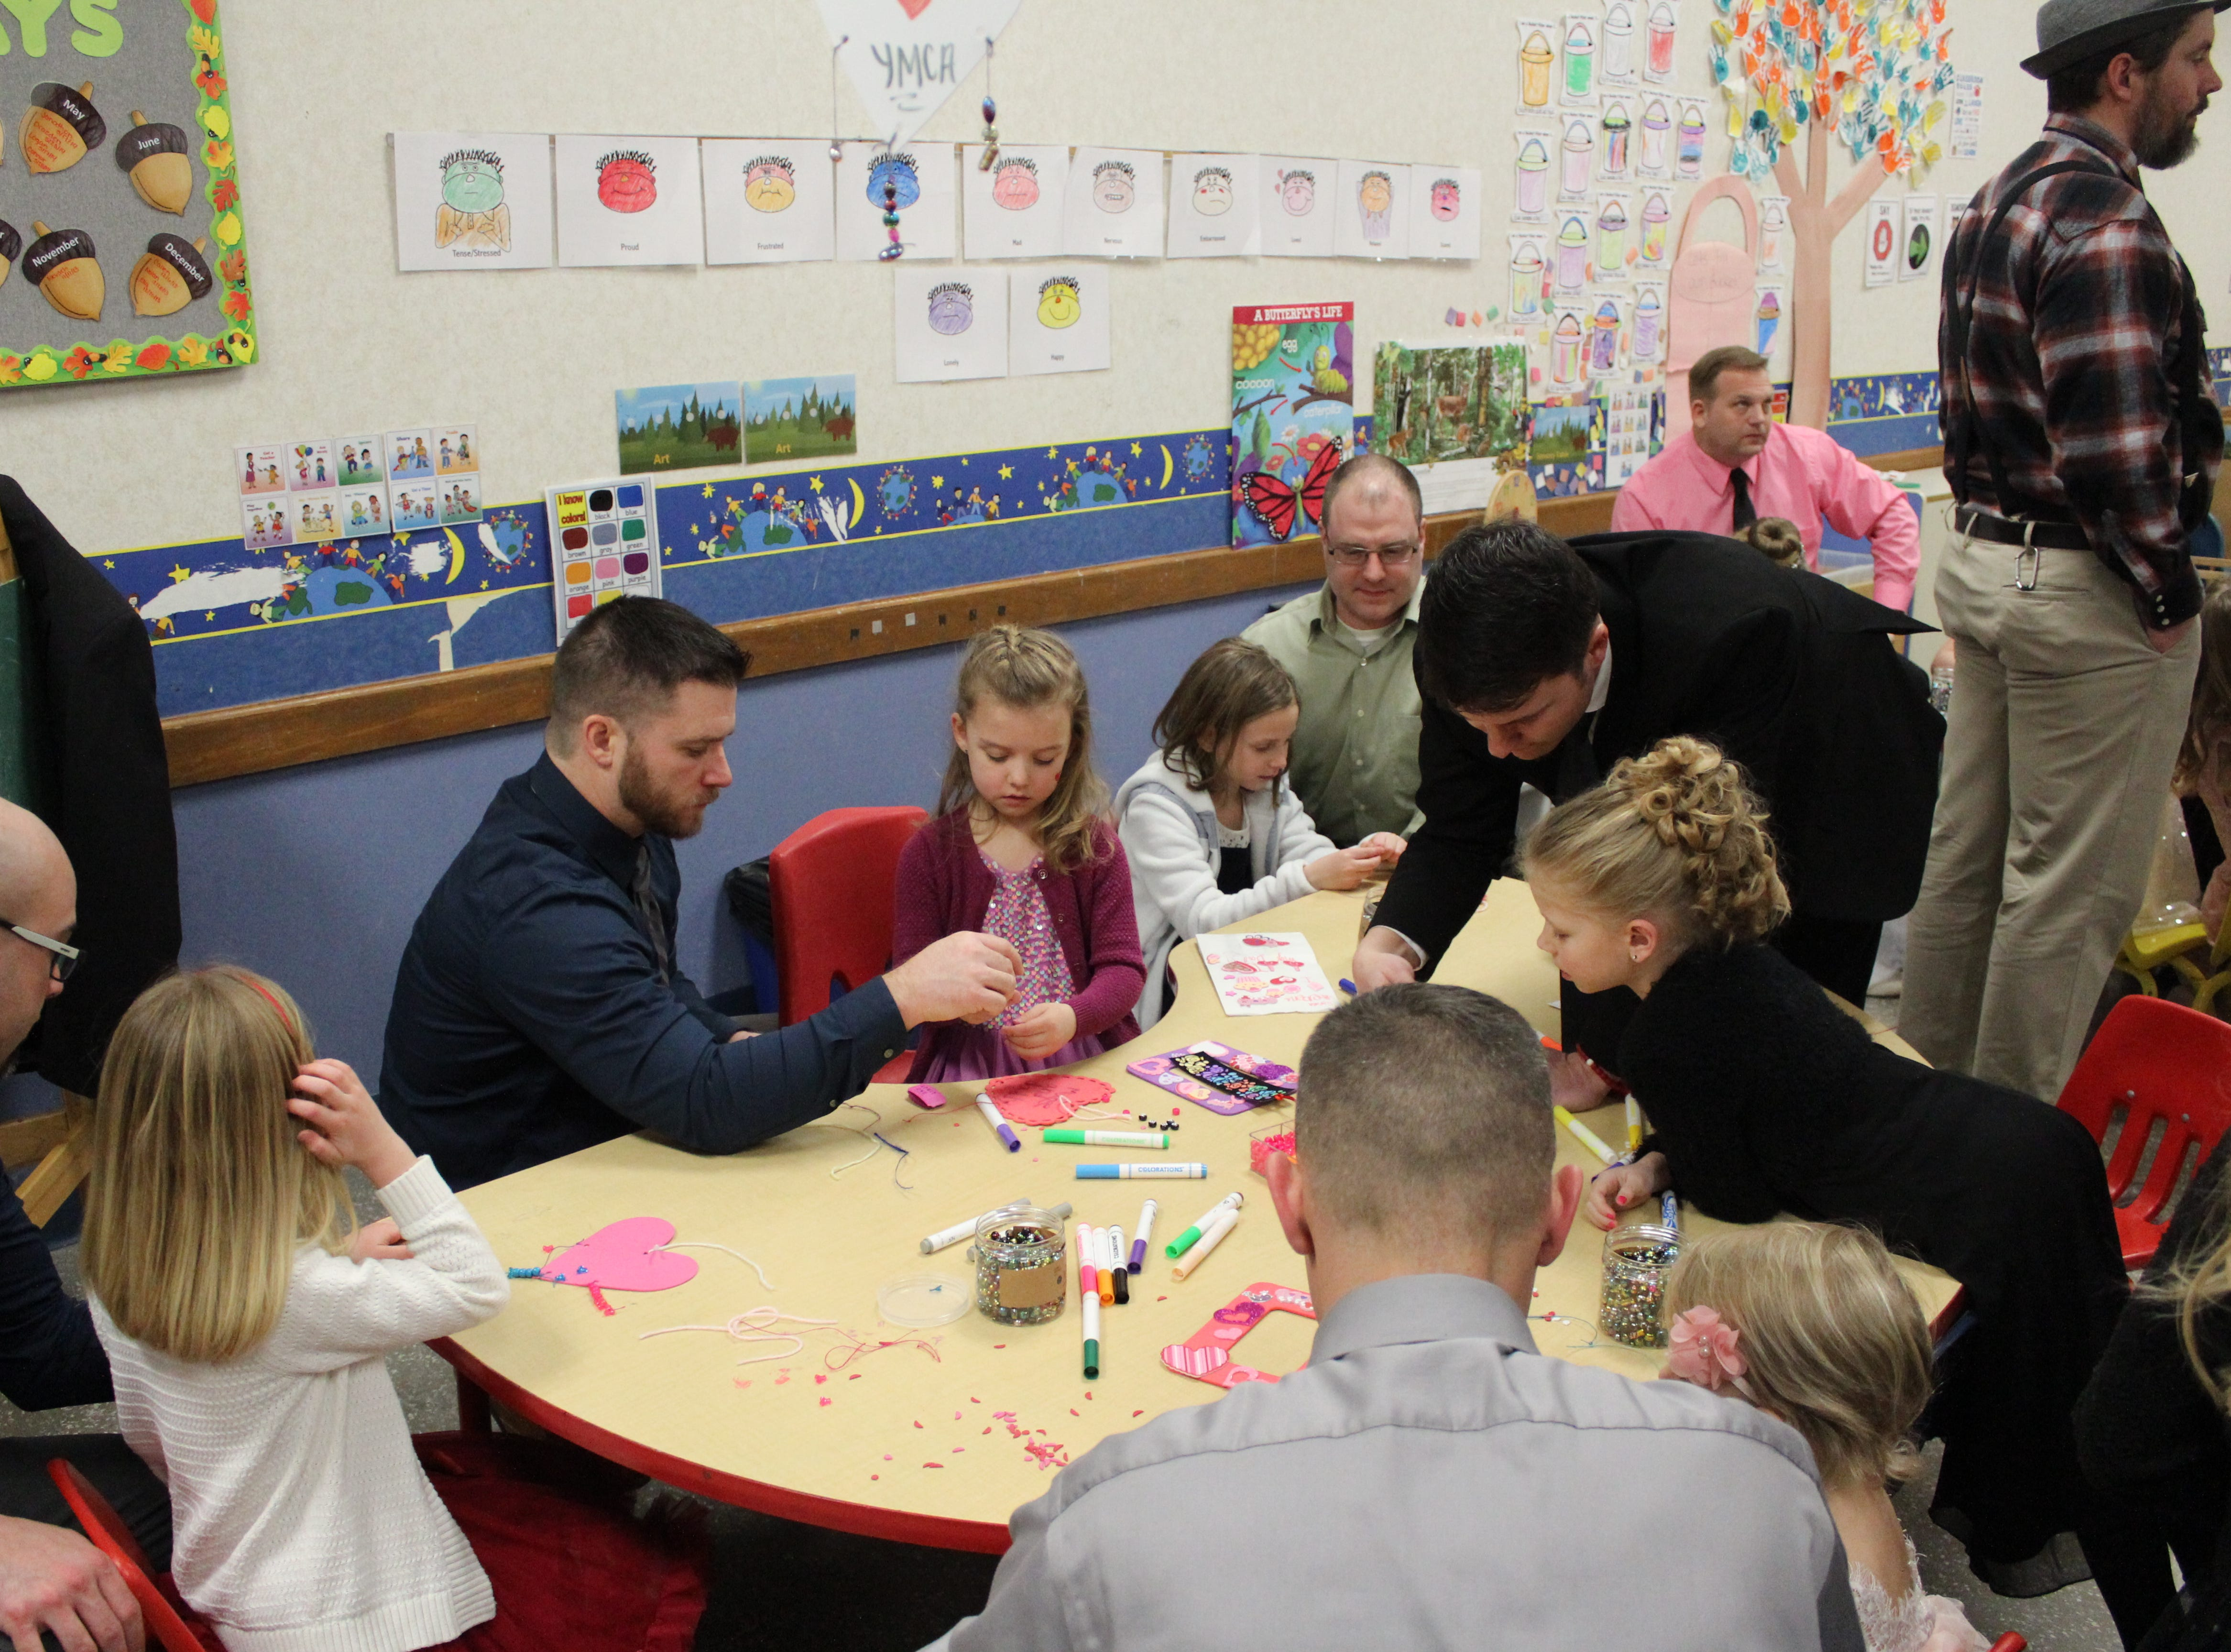 Fathers and daughters enjoy a night out at the annual Woodson YMCA Father Daughter dance. Fathers got to help their daughters assemble Valentines in one room.